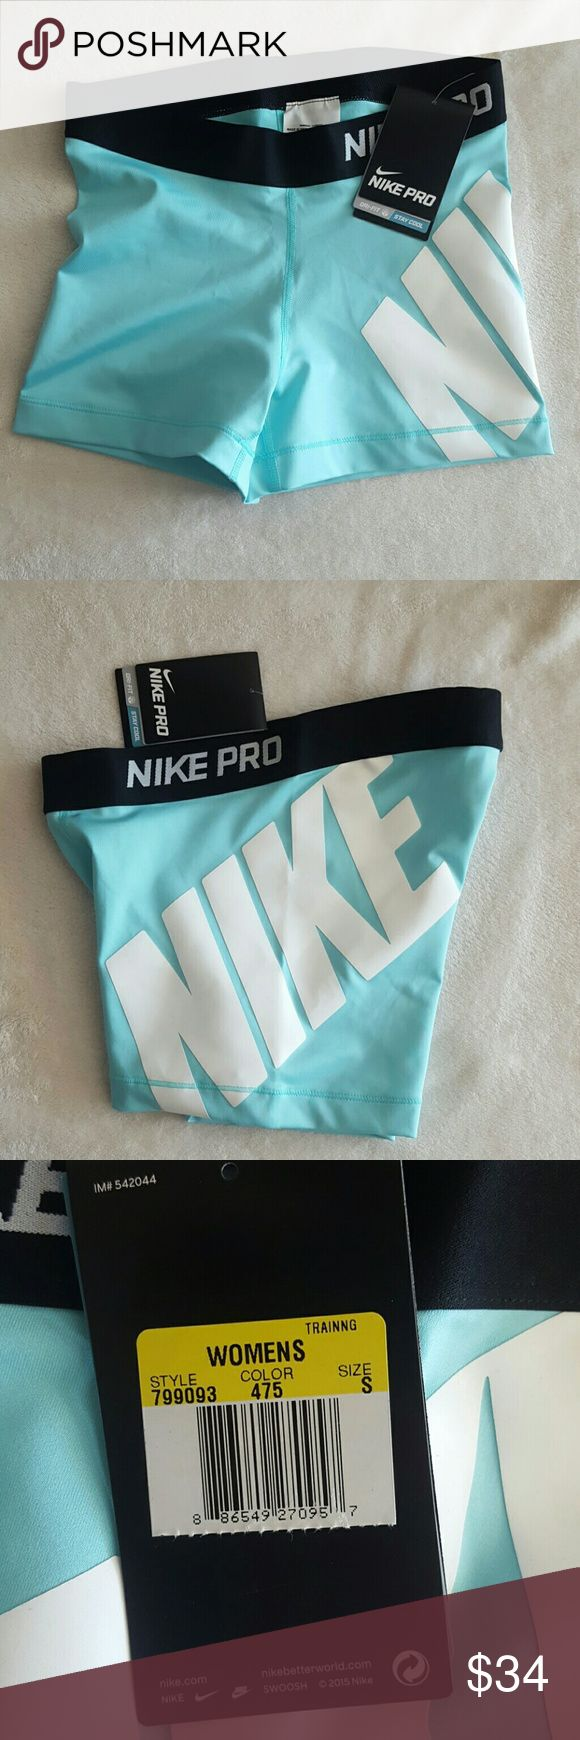 Nike pro drifit shorts Turquoise white and black spandex shorts Nike Shorts